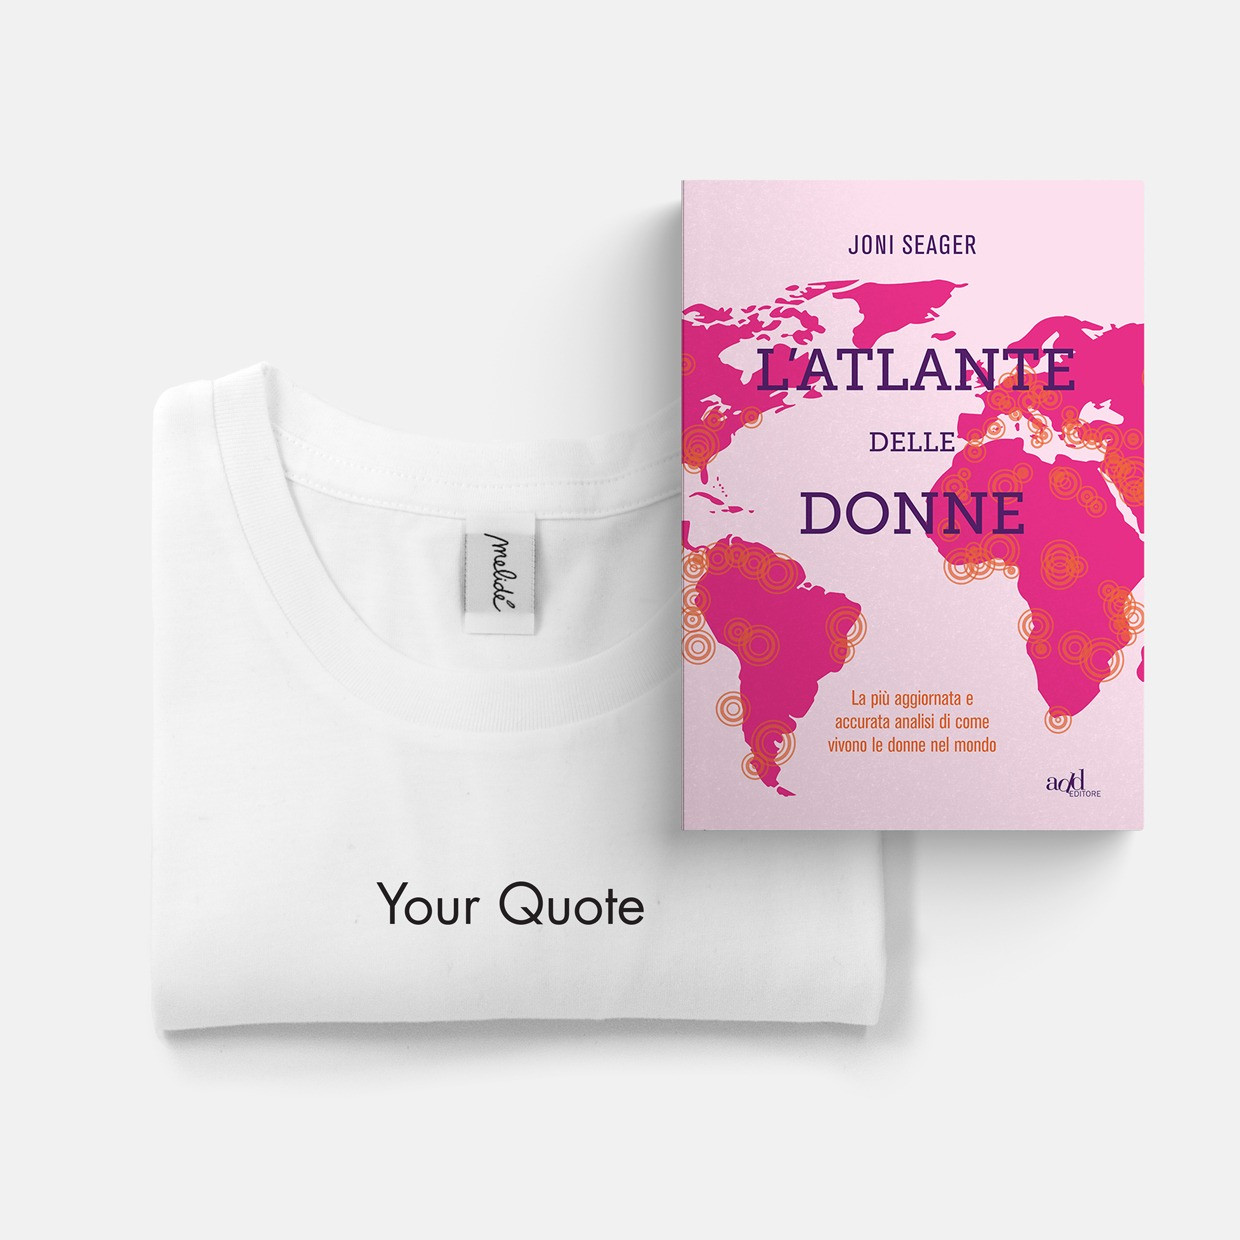 T-shirt YOUR QUOTE + ATLANTE DELLE DONNE kit - ultimate